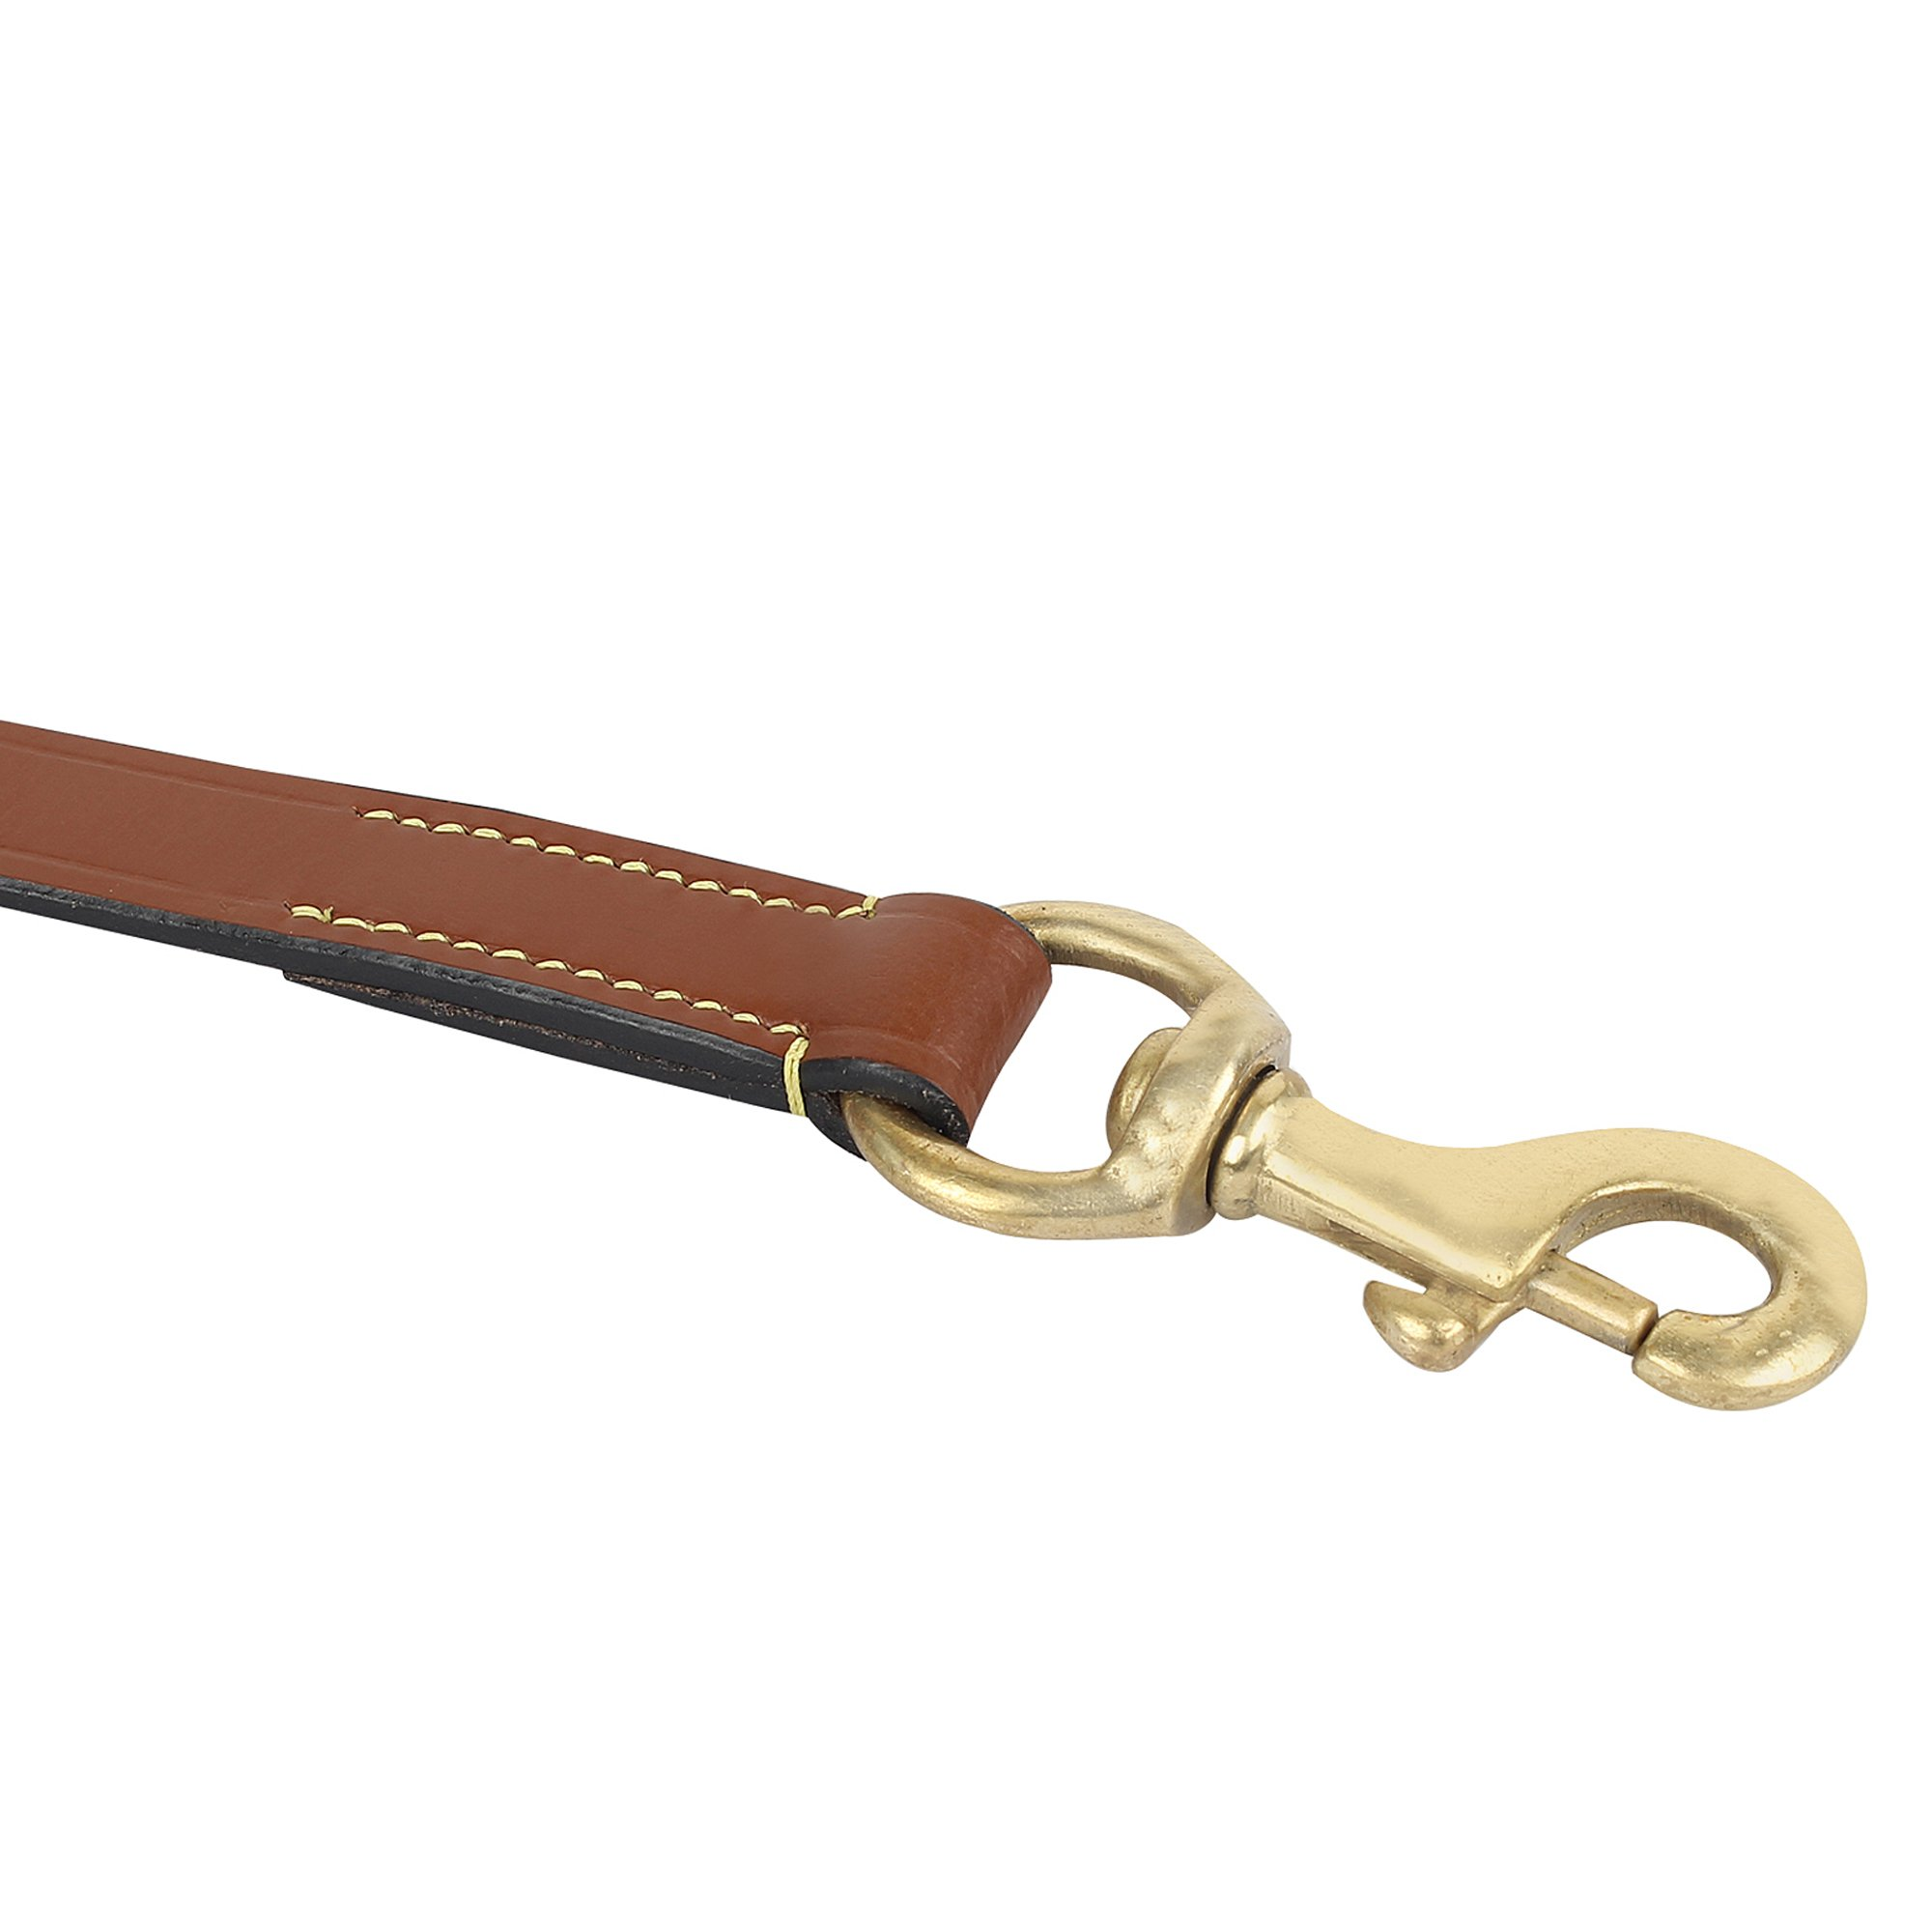 Rustic Town Leather Dog Leash 6 ft - Gentle Leader Leash for Small, Medium & Large Dogs - Miltary Grade Lead for Training & Walking by Rustic Town (Image #5)